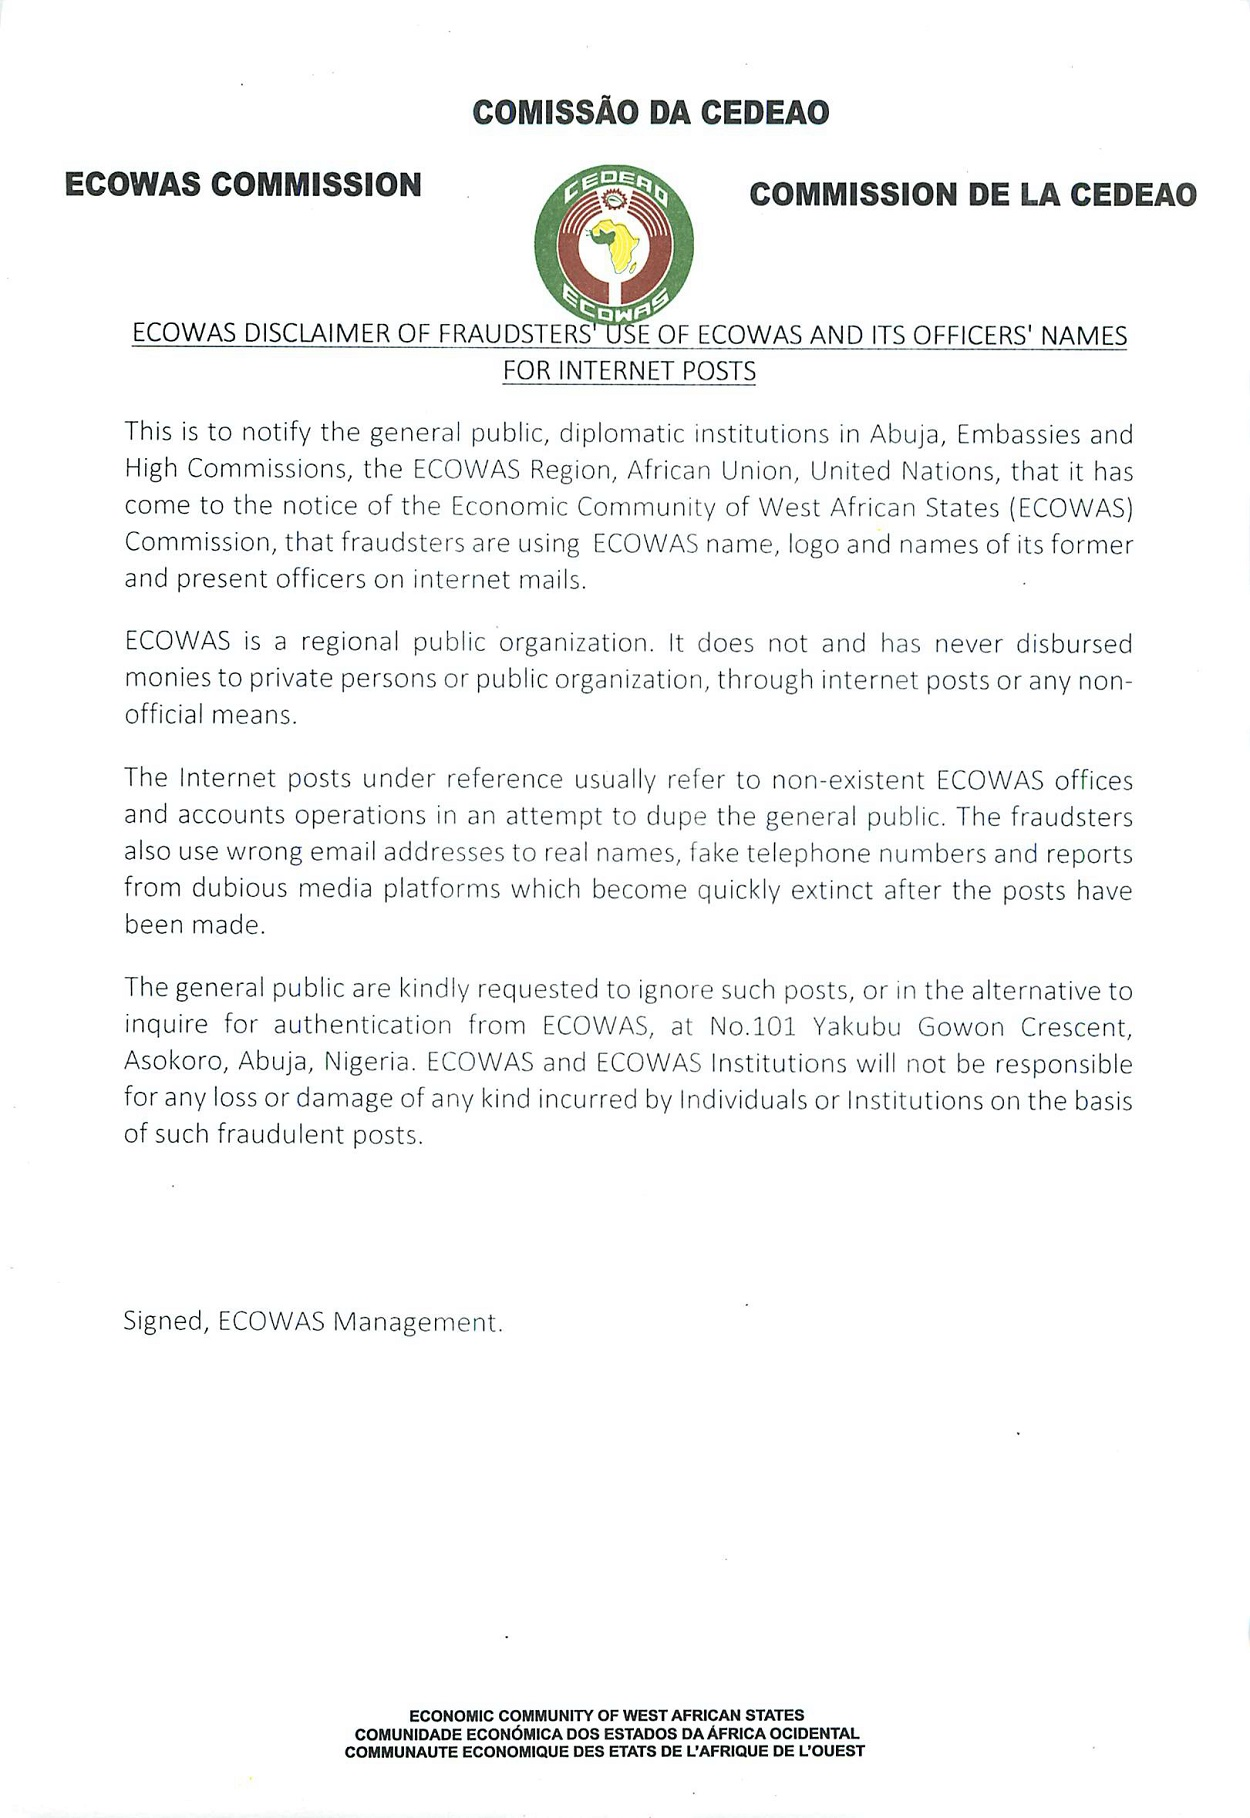 Ecowas Disclaimer Of Fraudster S Use Of Ecowas And Its Officer S Names For Internet Posts Economic Community Of West African States Ecowas